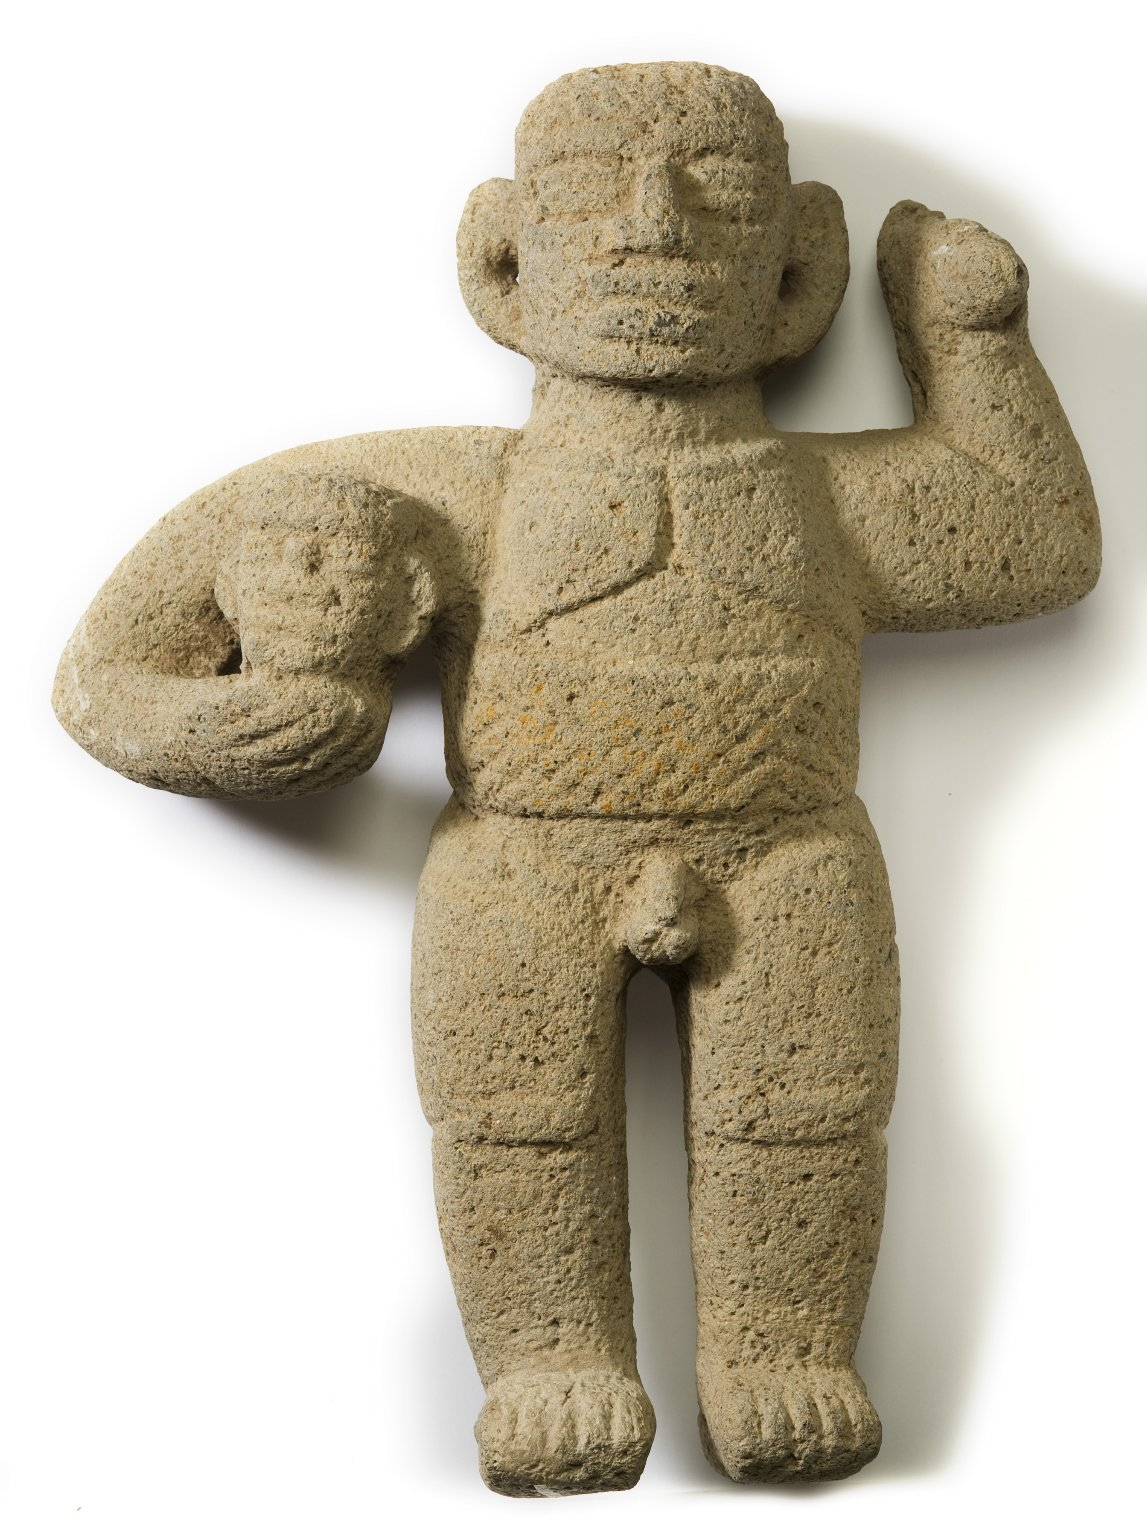 Carved basalt figure